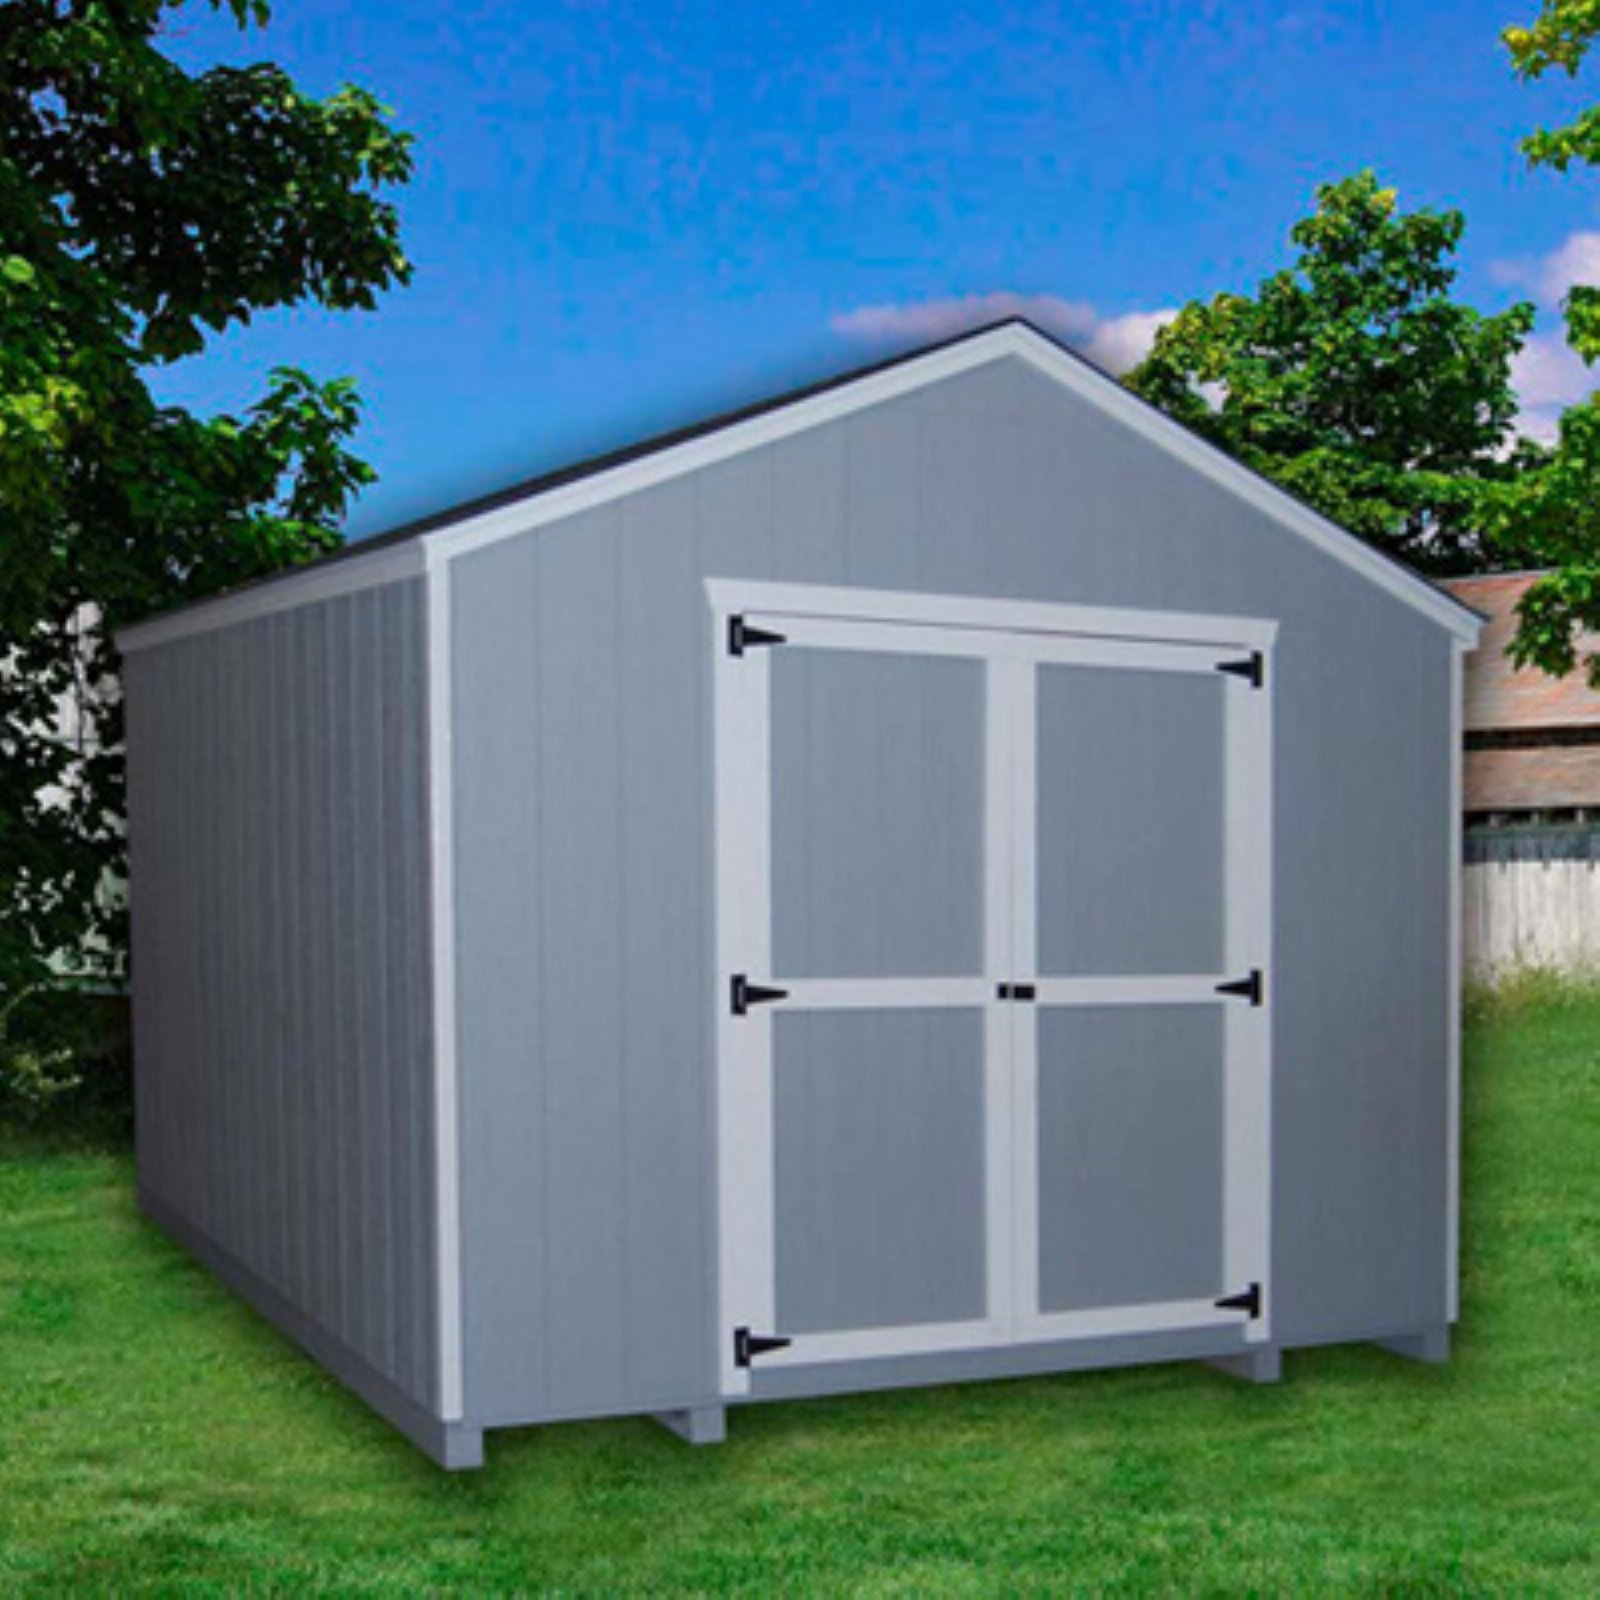 Little Cottage 24 x 12 ft. Value Gable Precut Storage Shed